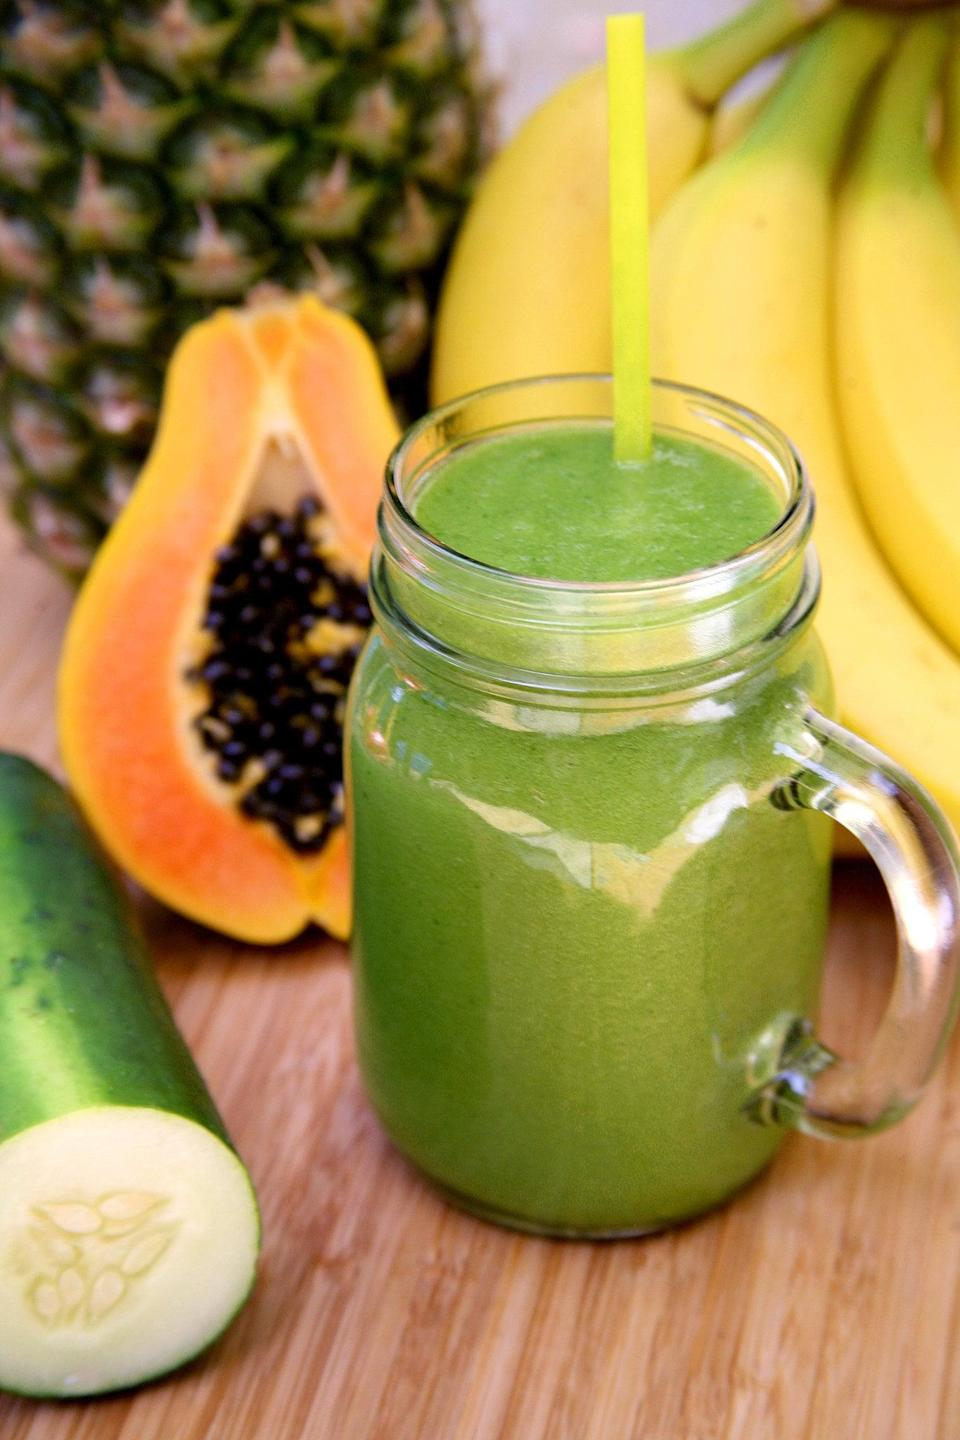 """<p>If you've had a big night out or are just feeling a little overstuffed, wake up with this <a href=""""https://www.popsugar.com/fitness/Debloating-Smoothie-34945818"""" class=""""link rapid-noclick-resp"""" rel=""""nofollow noopener"""" target=""""_blank"""" data-ylk=""""slk:debloating papaya smoothie"""">debloating papaya smoothie</a>. Filled with enzymes to aid in digestion as well as potassium to help <a href=""""https://www.health.harvard.edu/staying-healthy/potassium_and_sodium_out_of_balance"""" class=""""link rapid-noclick-resp"""" rel=""""nofollow noopener"""" target=""""_blank"""" data-ylk=""""slk:flush out excess sodium"""">flush out excess sodium</a>, this smoothie will help you start your day right and feel a little lighter as well. </p>"""